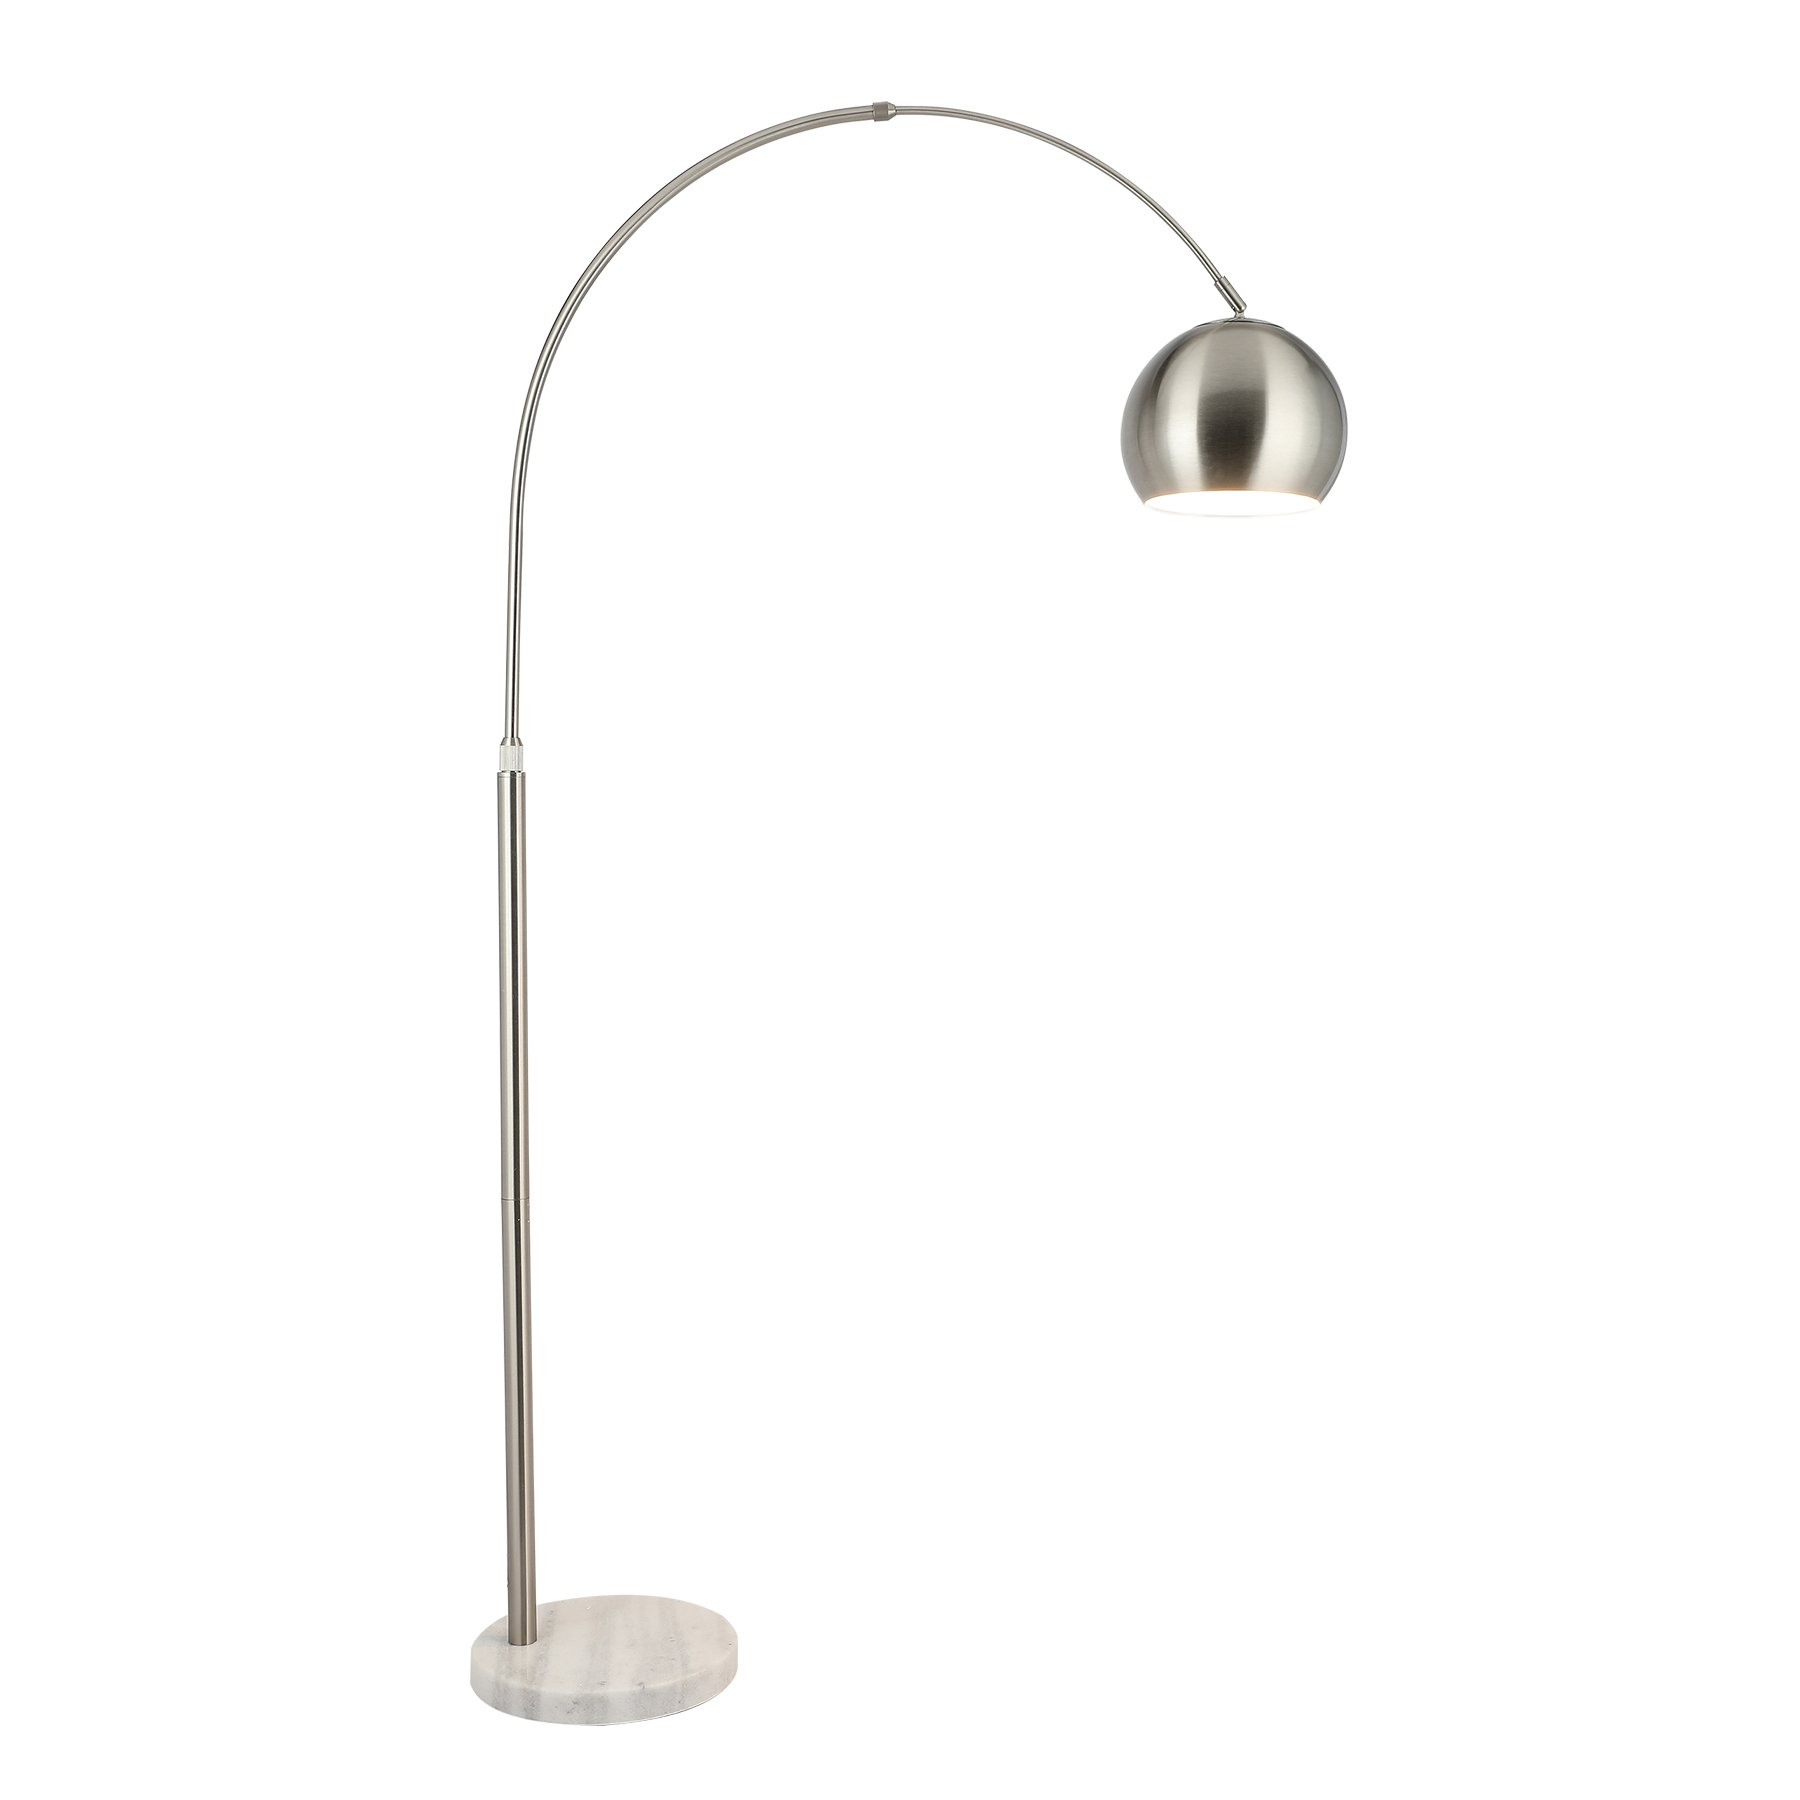 CO-Z Modern Arc Floor Lamp with 360° Rotatable Hanging Shade, Adjustable Nickel Standing Reading Light with Marble Base, Contemporary Arch Metal Pole Lamp with LED Bulb for Living Room Couch, 73 Inch by CO-Z